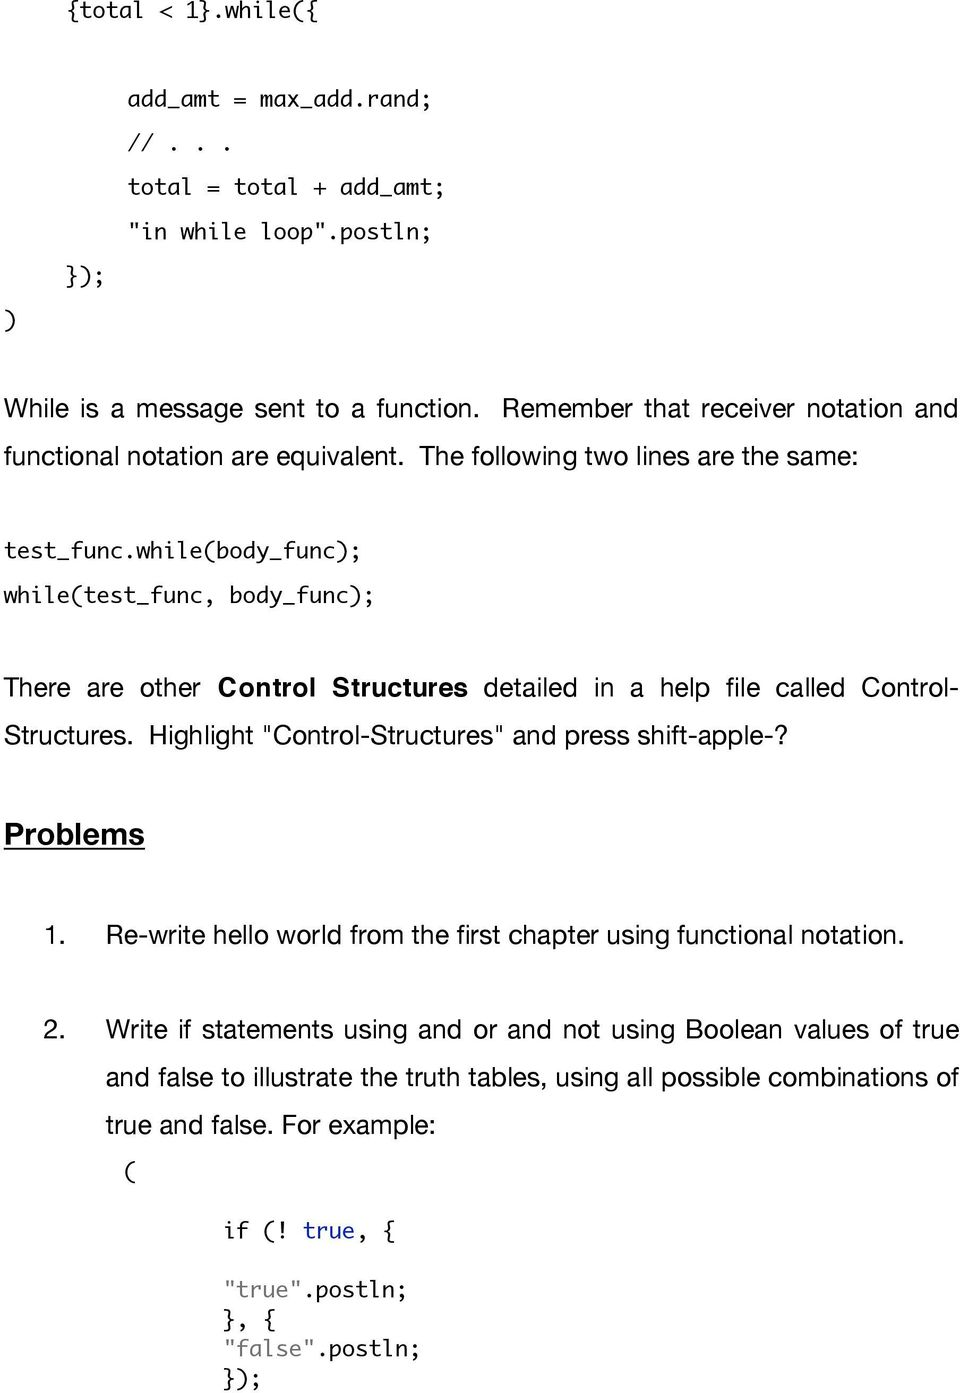 whilebody_func; whiletest_func, body_func; There are other Control Structures detailed in a help file called Control- Structures.